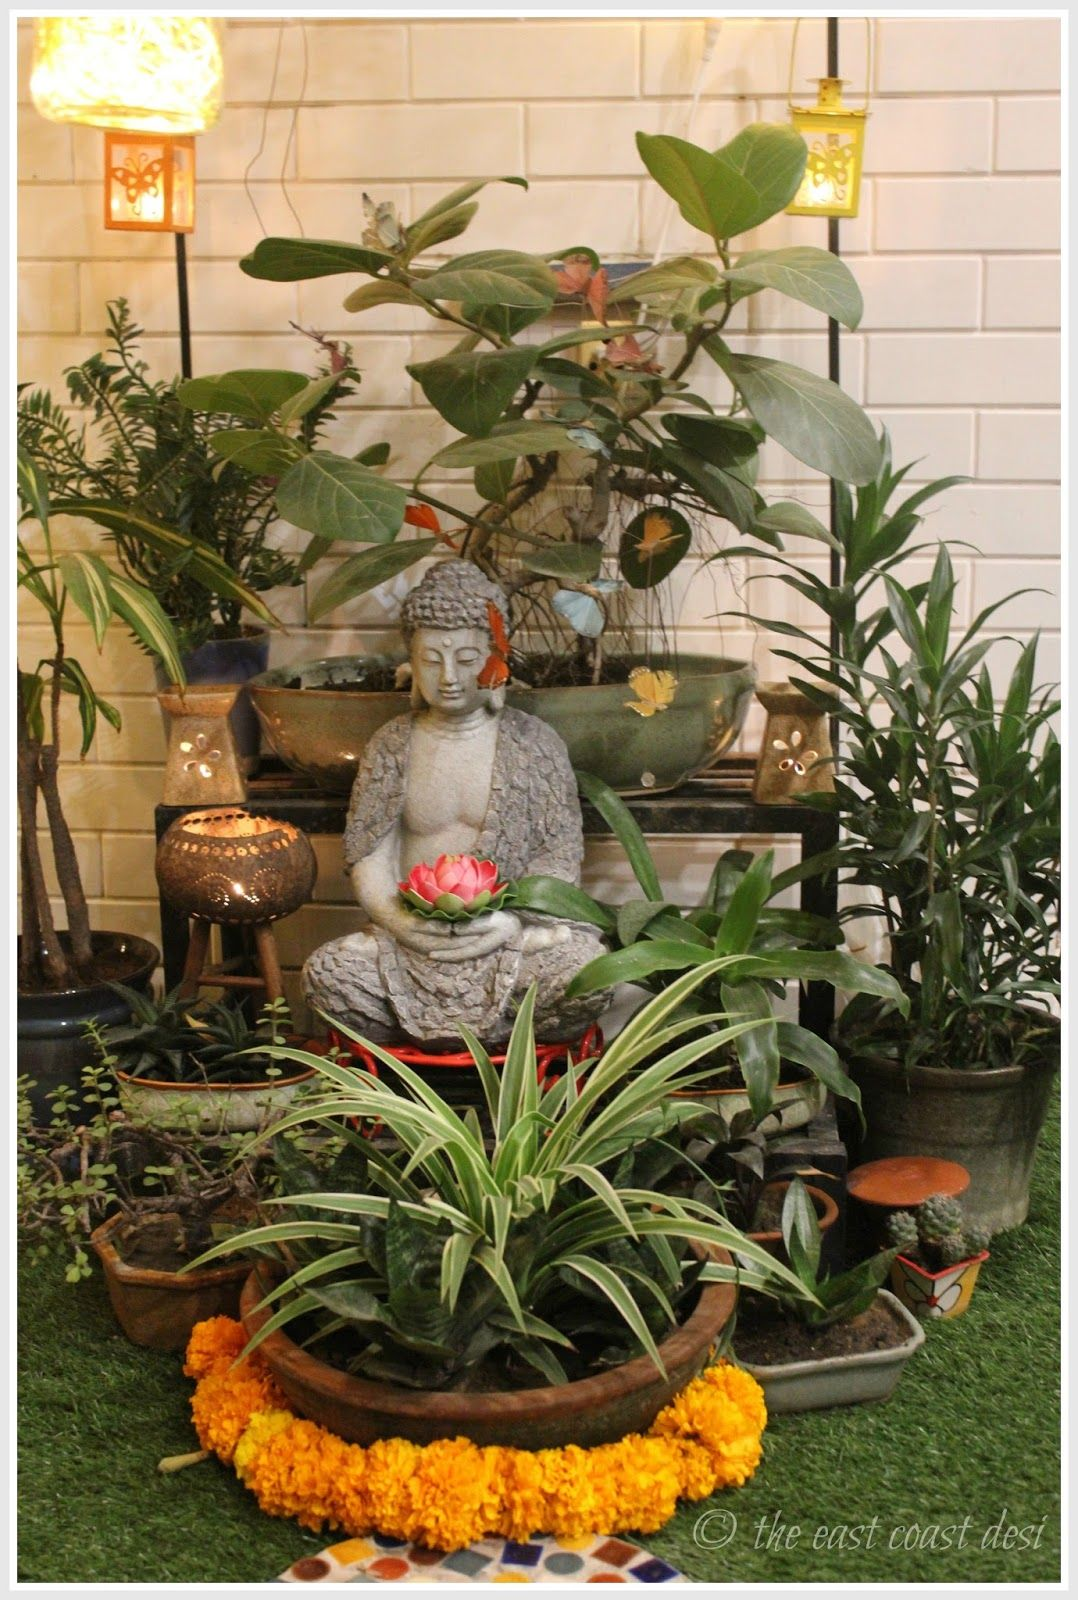 Keeping It Elegantly Eclectic (Home Tour) Buddha decor